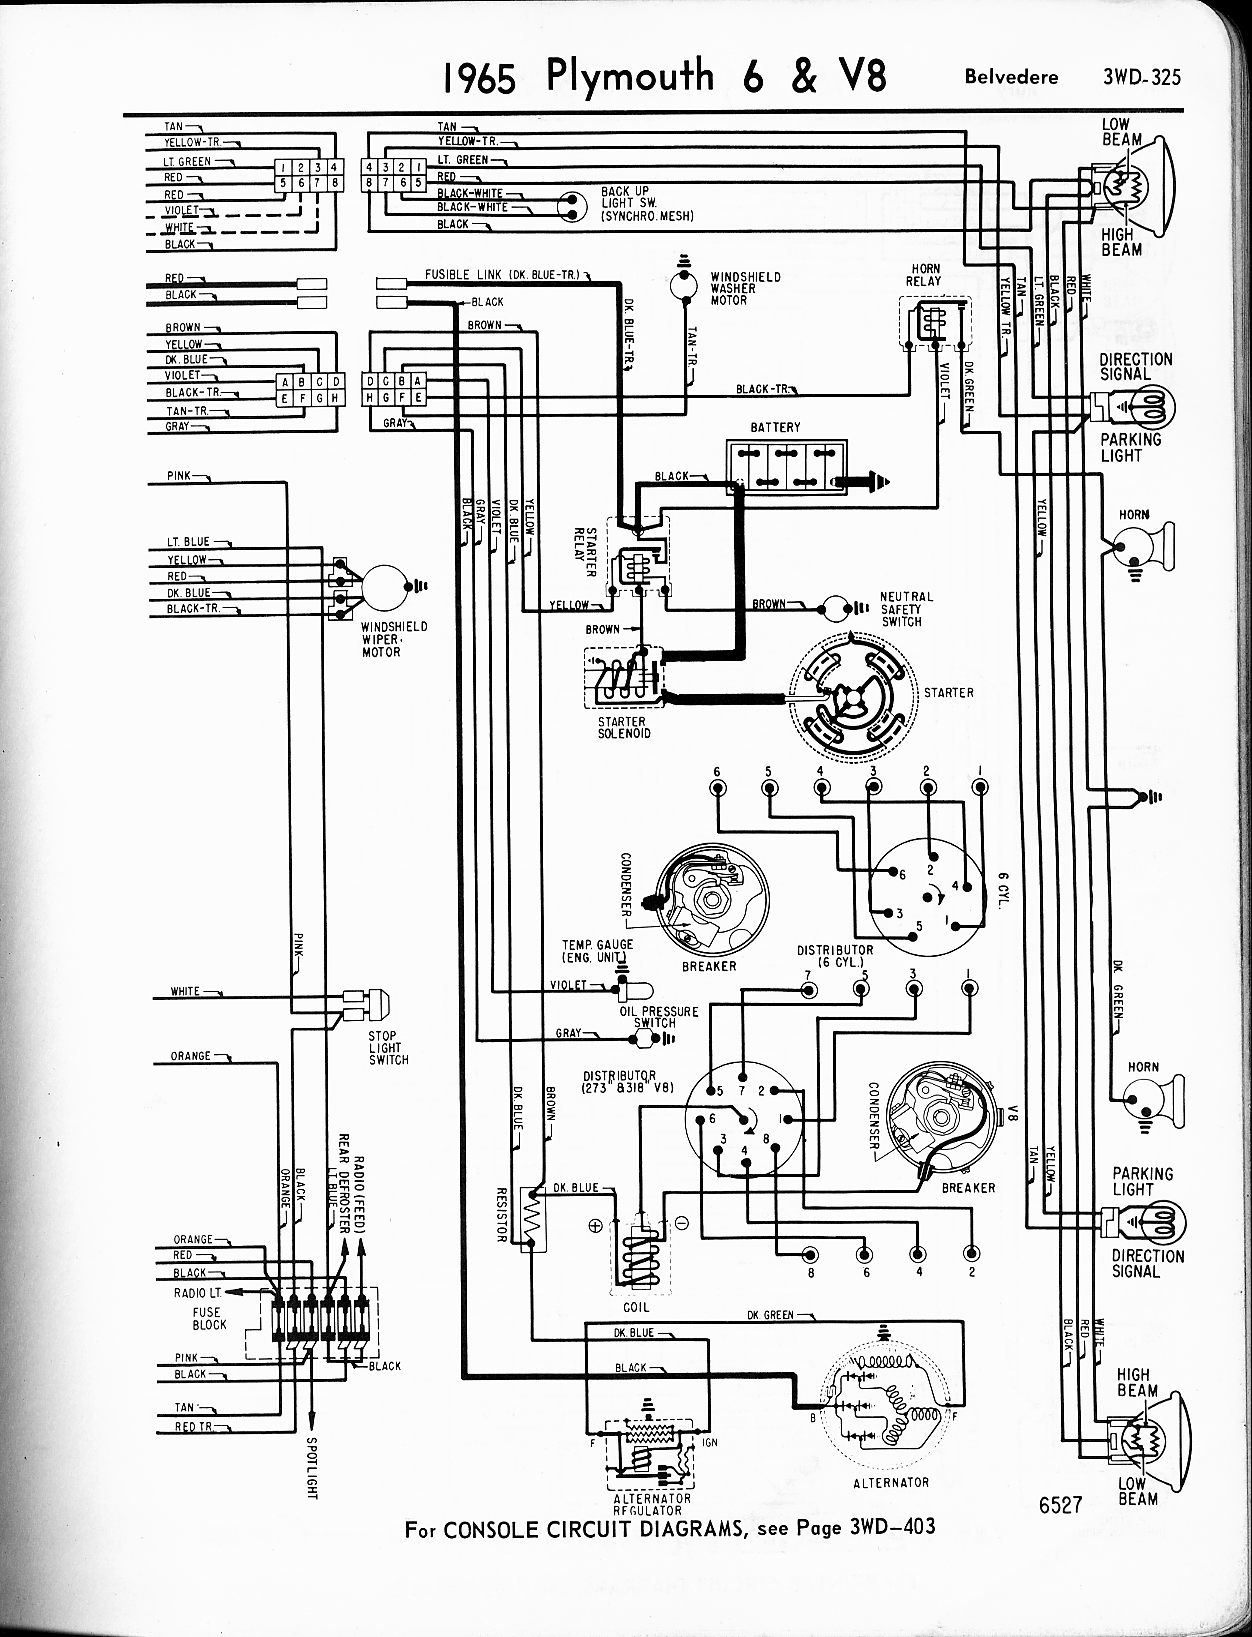 1956 1965 plymouth wiring the old car manual project 1965 plymouth 6 v8 belvedere right page plymouth ac wiring diagrams